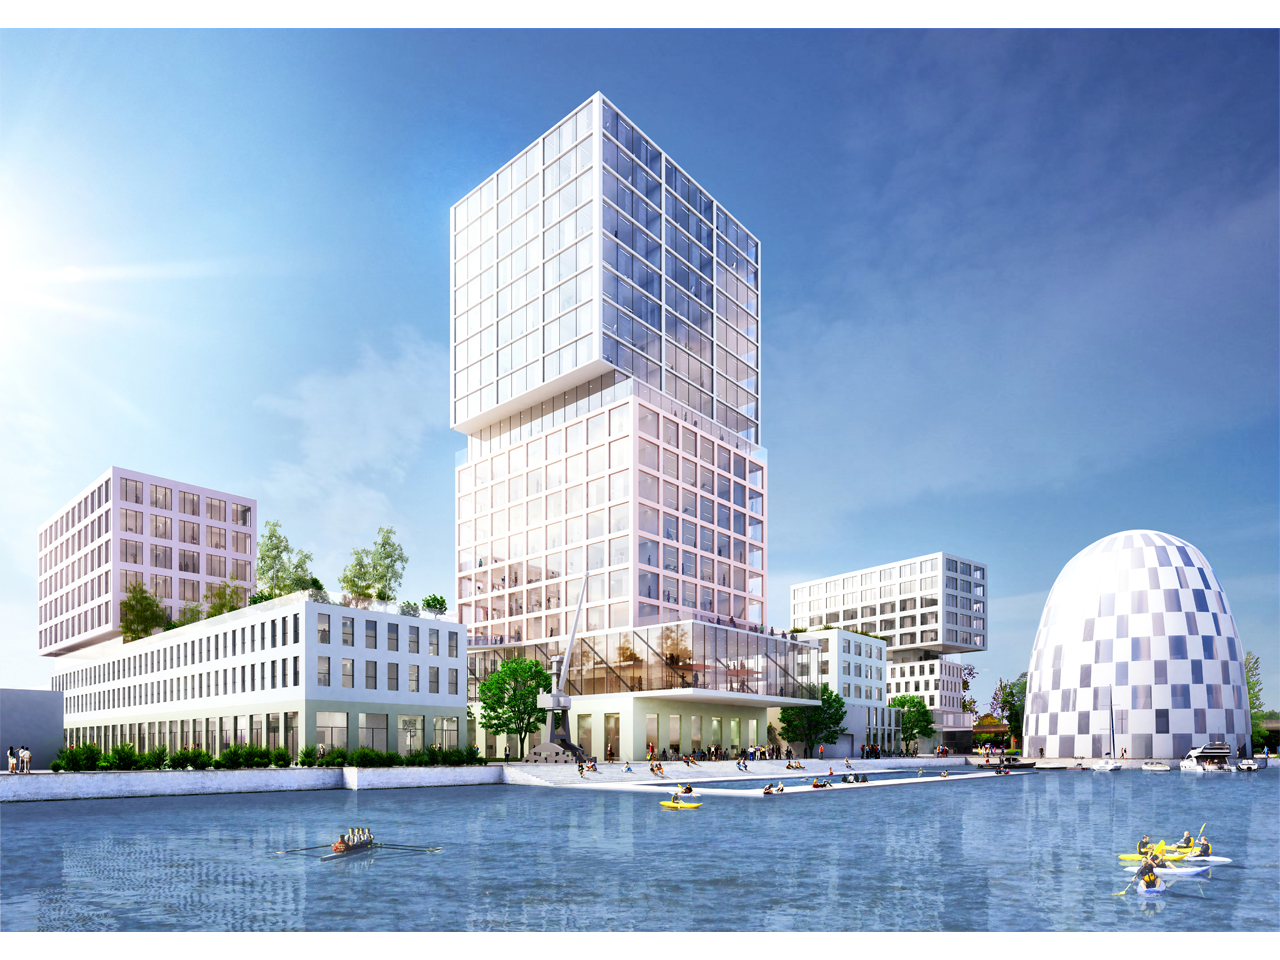 Construction begins on the first phase of Hamburg Innovation Port, a 60,000m2 mixed-use masterplan